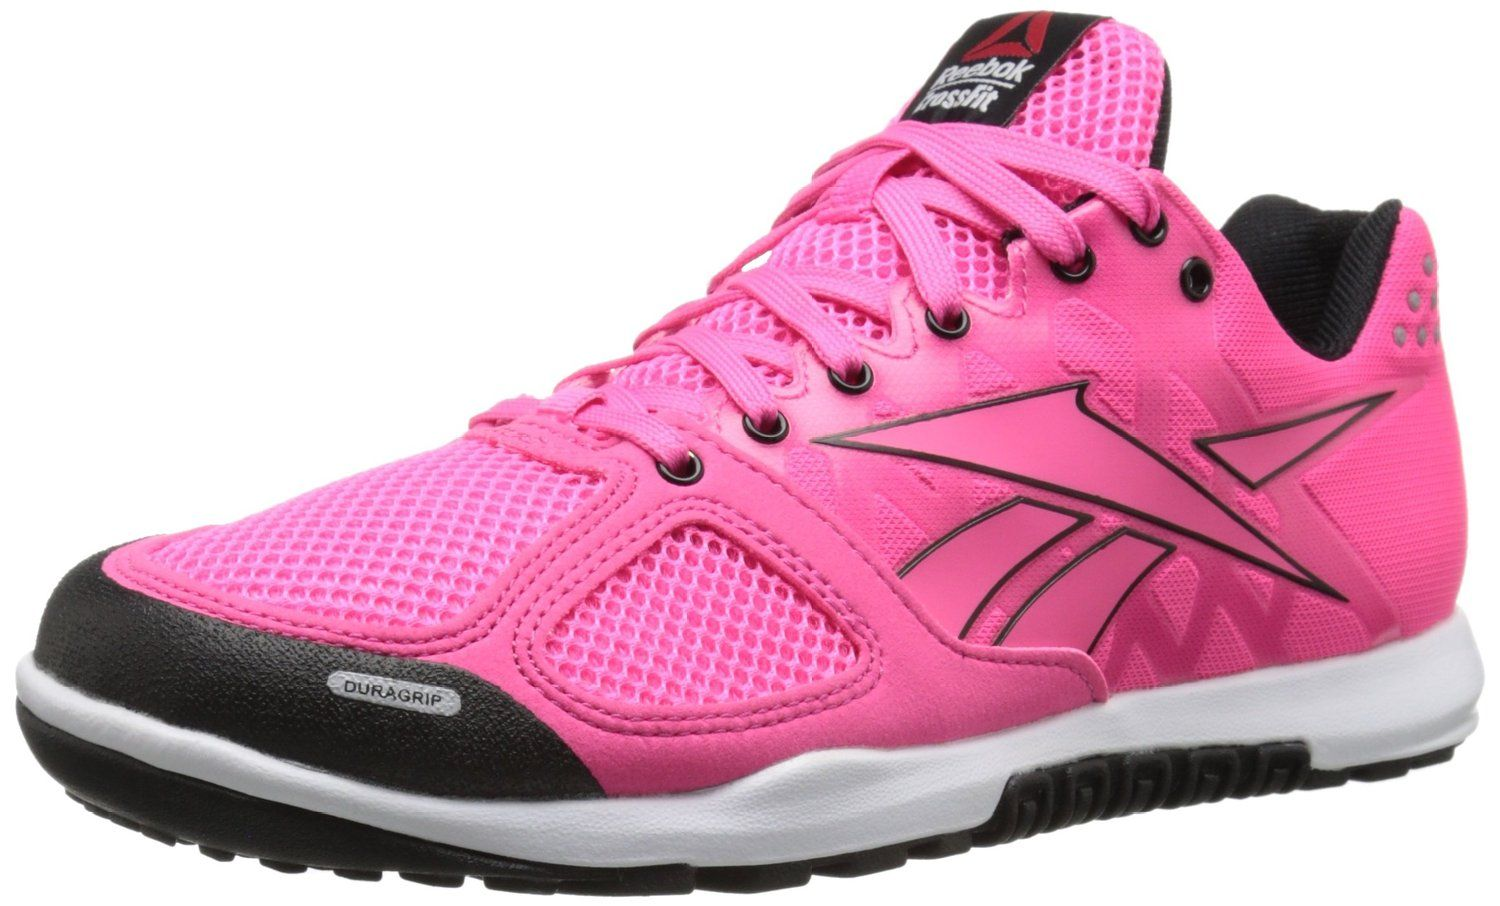 54e18f66651f9 Amazon.com: Reebok Women's Crossfit Nano 2.0 Cross-Training Shoe ...